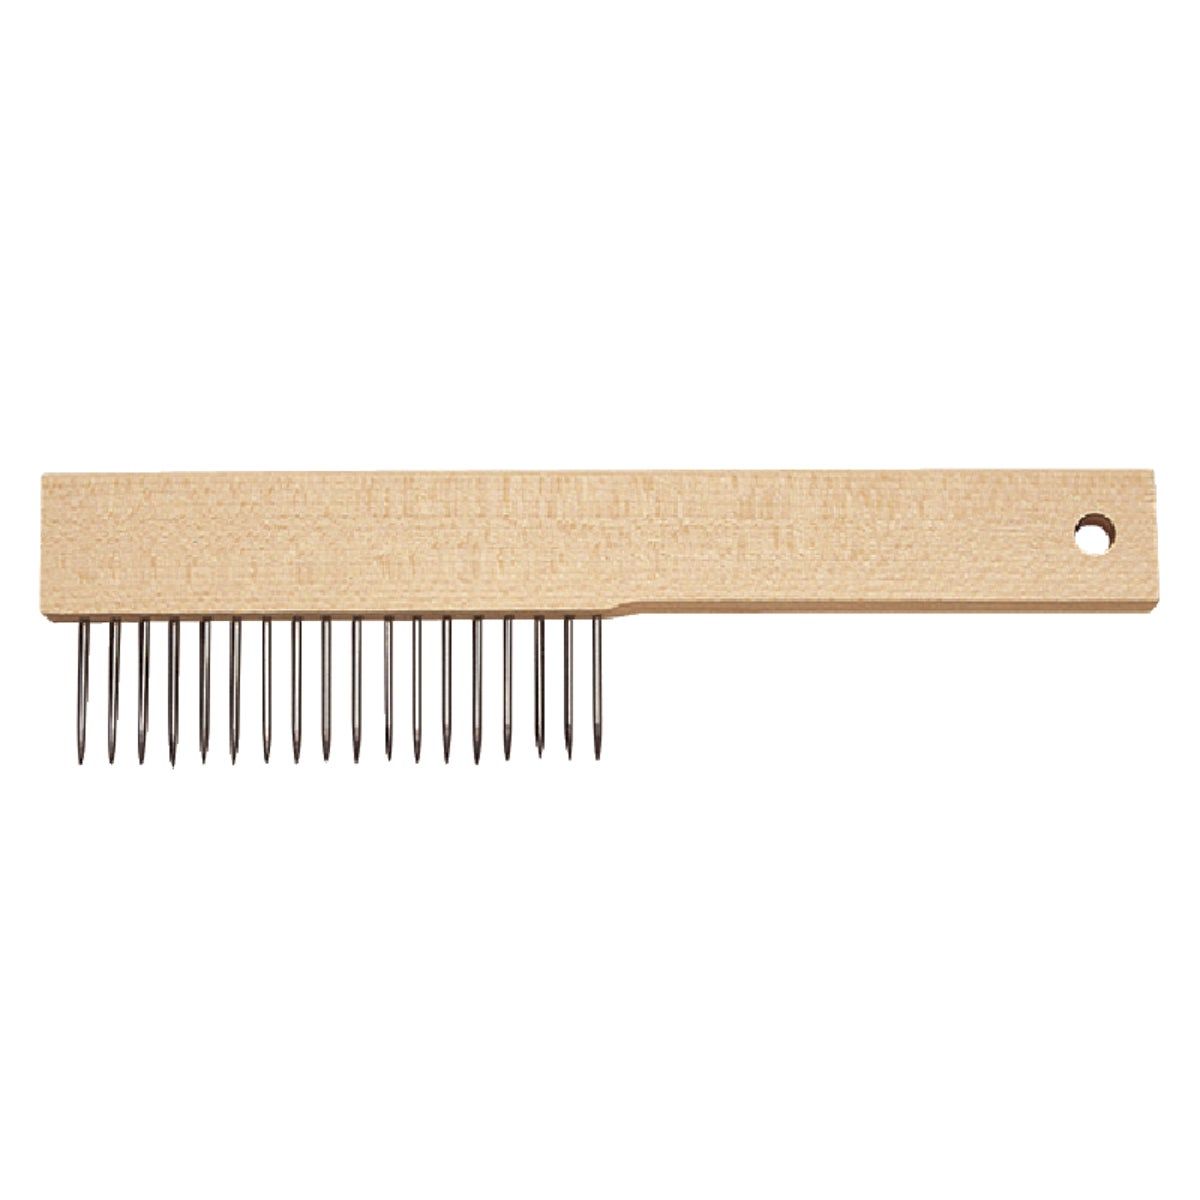 BRUSH COMB - 140068010 by Purdy Bestt Liebco